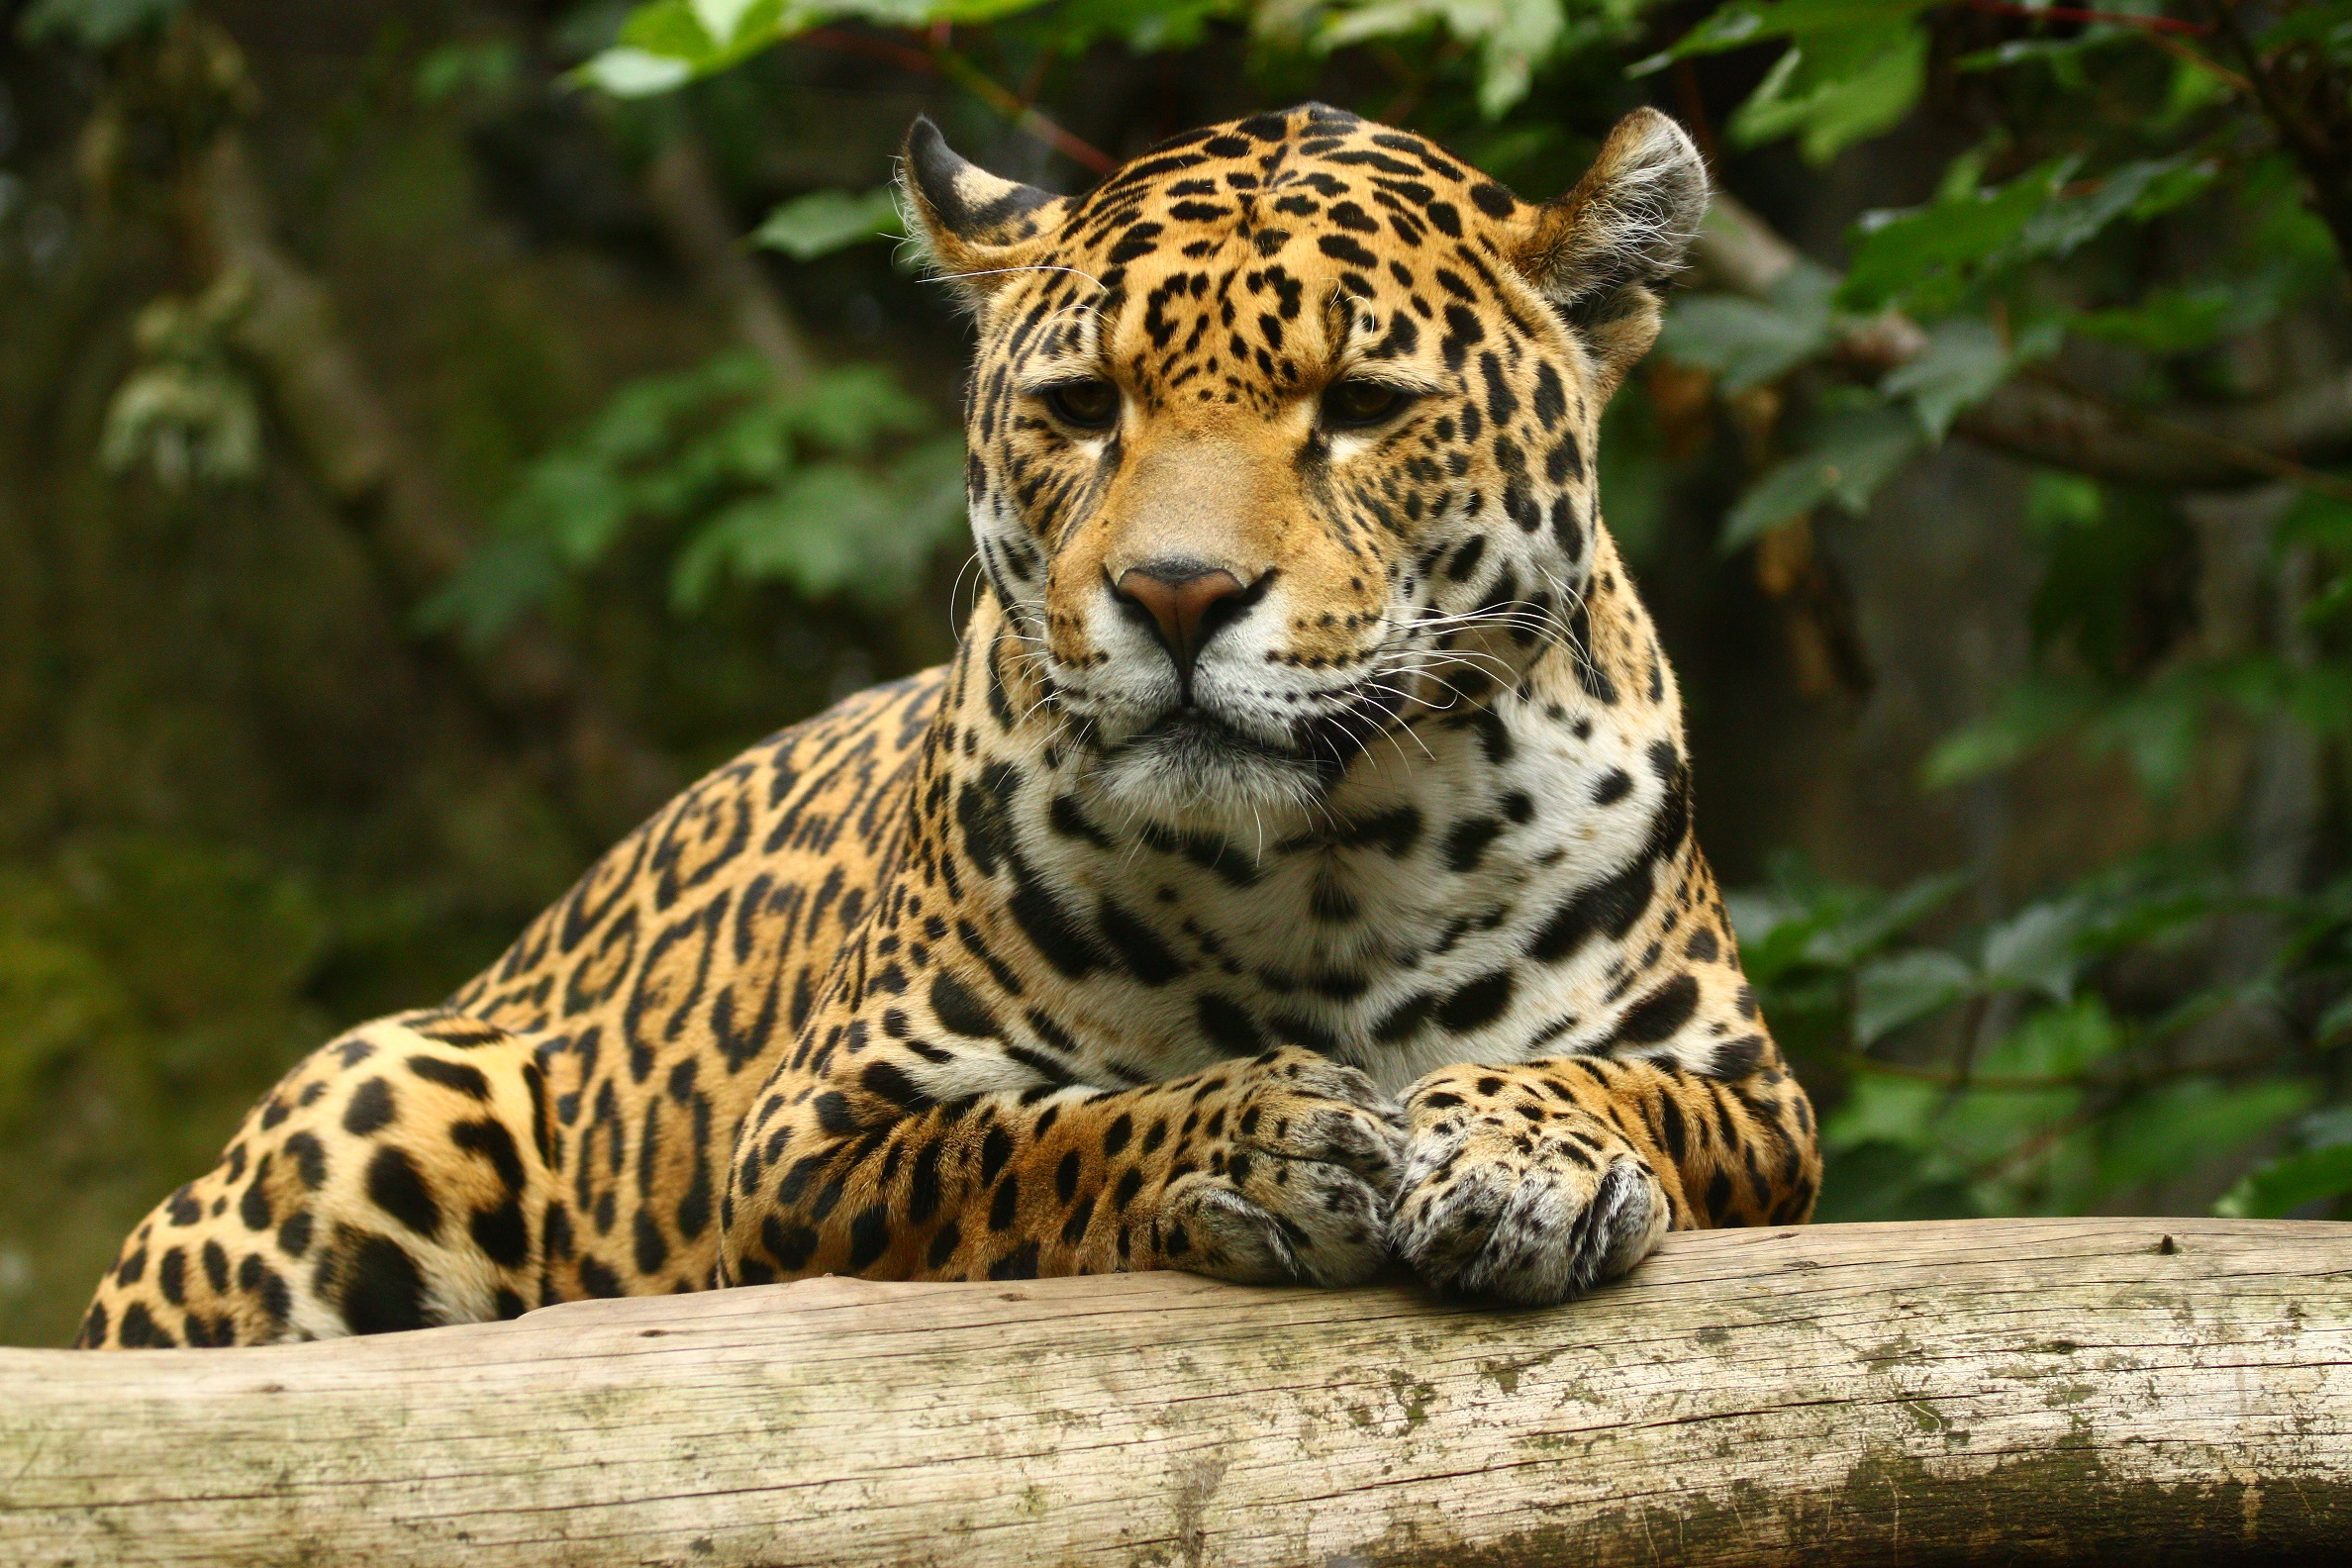 jaguar en la selva hd 2376x1584 imagenes wallpapers gratis animales fondos de pantallas. Black Bedroom Furniture Sets. Home Design Ideas